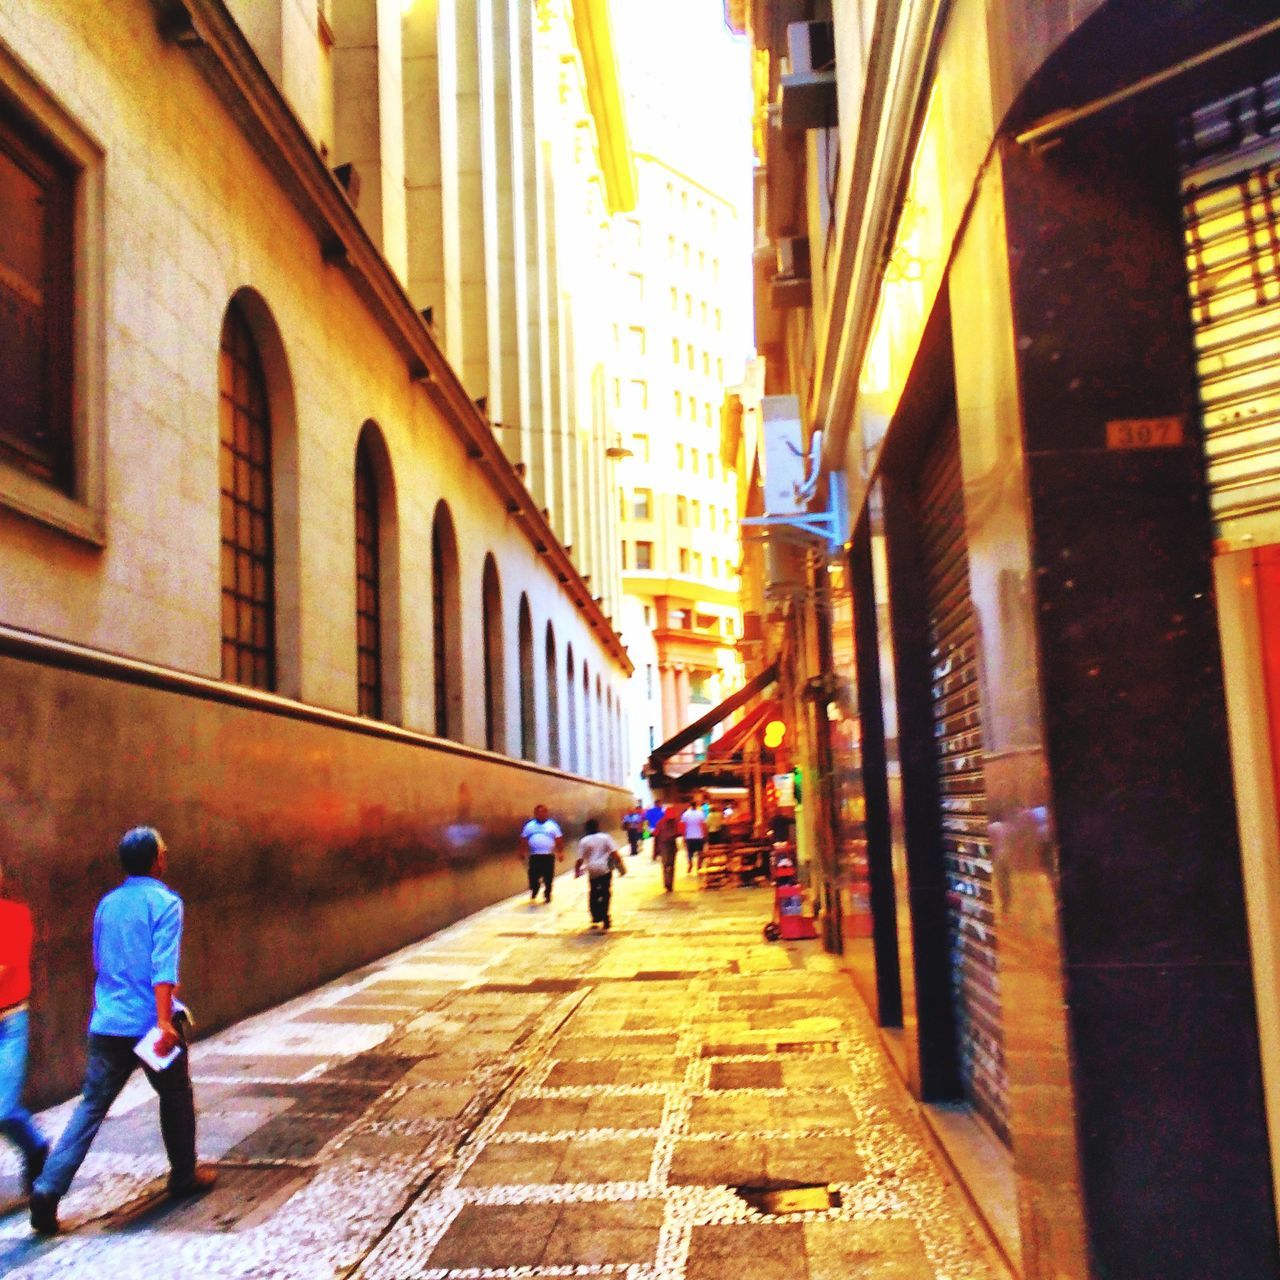 Downtown SAO PAULO BRASIL 🌆 🇧🇷 Street Photography HDR Photography Amazing Architecture The Adventure Handbook Usa #igersusa #ig_unitedstates #rockin_shotz #just_unitedstates #insta_crew #gf_usa #nature #rsa_rural #instagramhub #allshots_#world_shooters #insta_america #ig_captures #centralfeed #webstagram #ic_landscapes #wonderful_america #storyofamerica #instagra Hdr_Collection EyeEm Taking Photos All_shots #Portrait #Vscocamphotos #Likesforlikes #Photographs #Photographylovers #TopLikeTags #Outdoorphotography #Likesreturned #Silhouette #Likeforlike #Art #Contrast #Landscaped #TagStaGram #love #Enlight #tagstagram #photooftheday #selfie #amazing #f